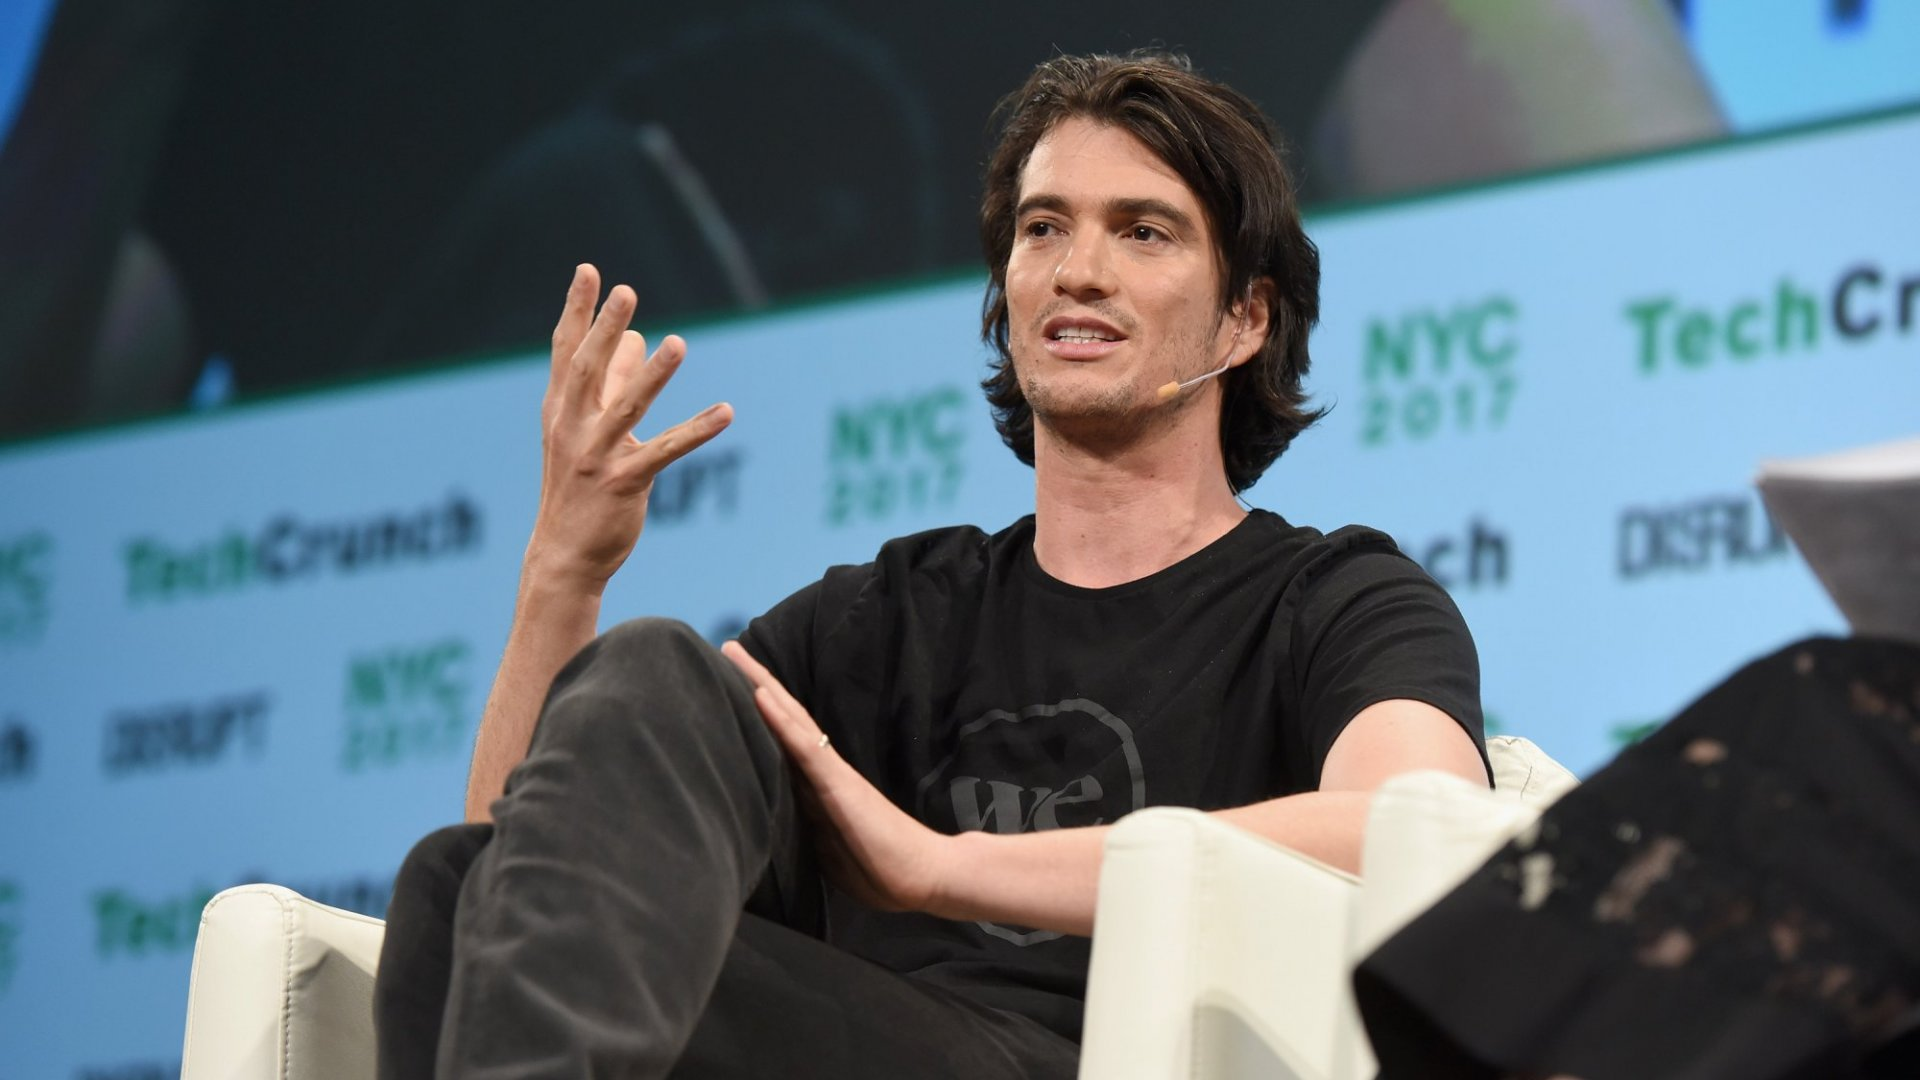 Ahead of Its IPO, WeWork's Adam Neumann Reportedly Sold Shares He Owned in the Company and Took Loans Worth $700 million